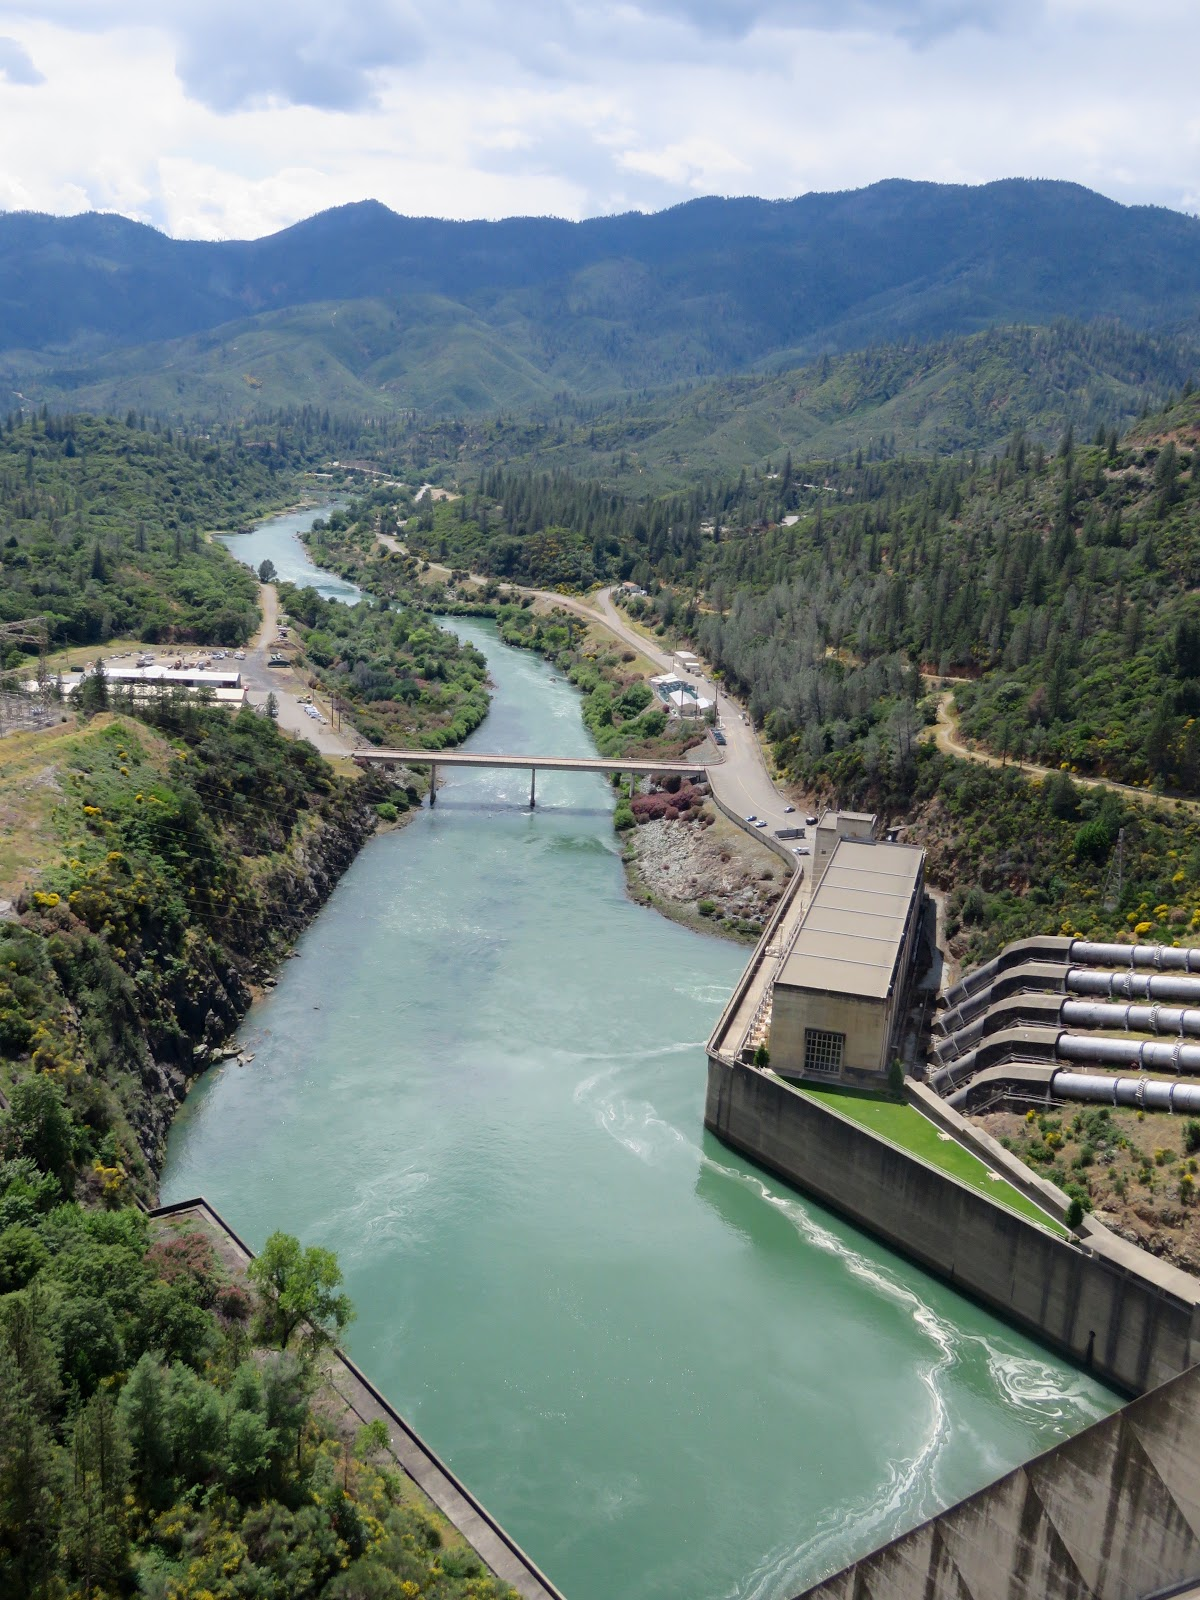 shasta lake men Why did oehha develop an advisory for eating fish from shasta lake and another set of advice for women 46 years and older and men 18 years and older.